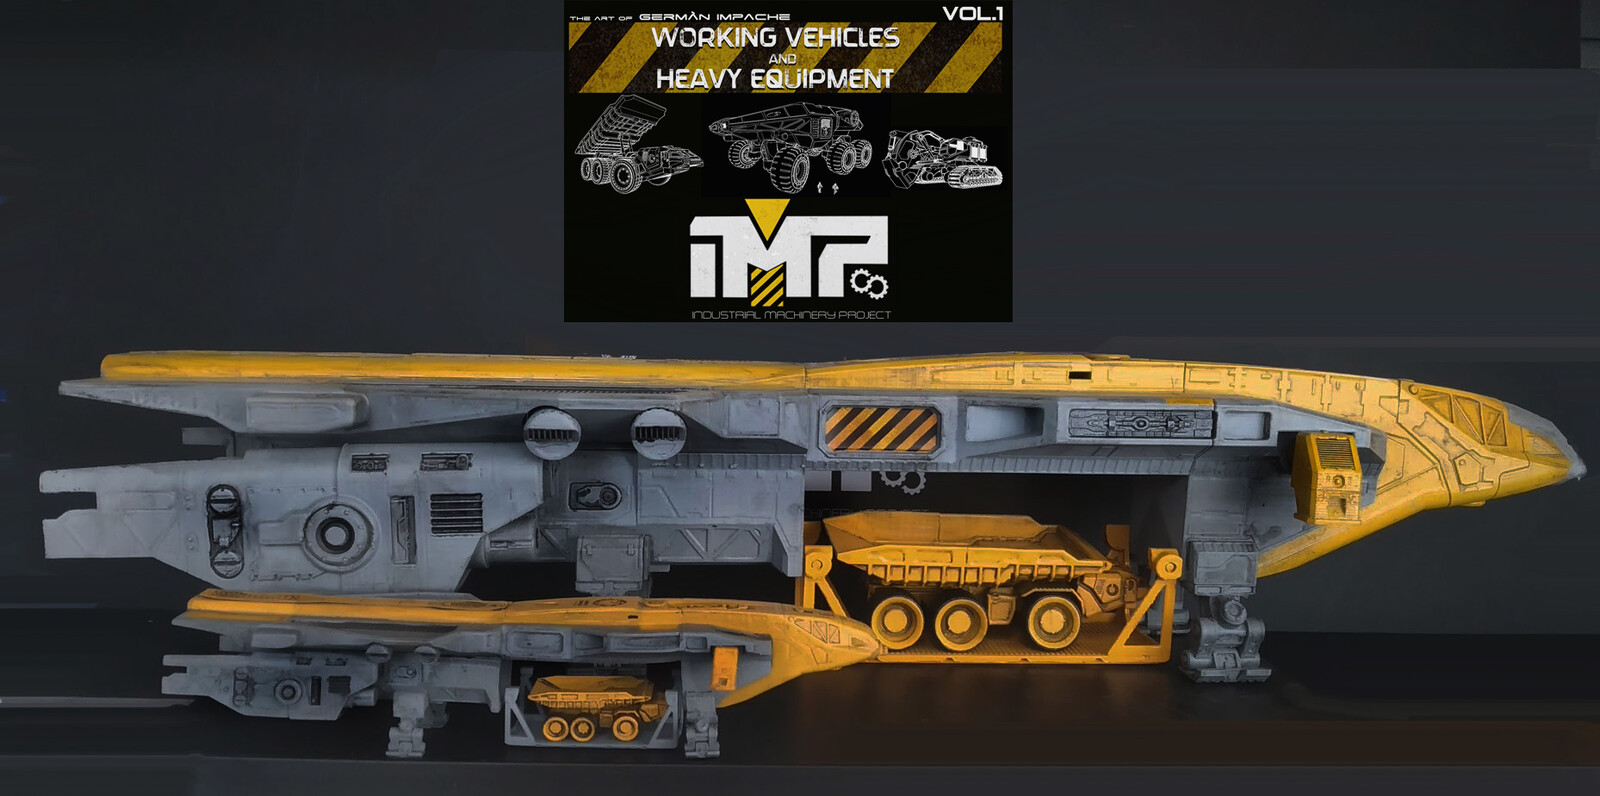 IMP industrial machinery project comparison scale